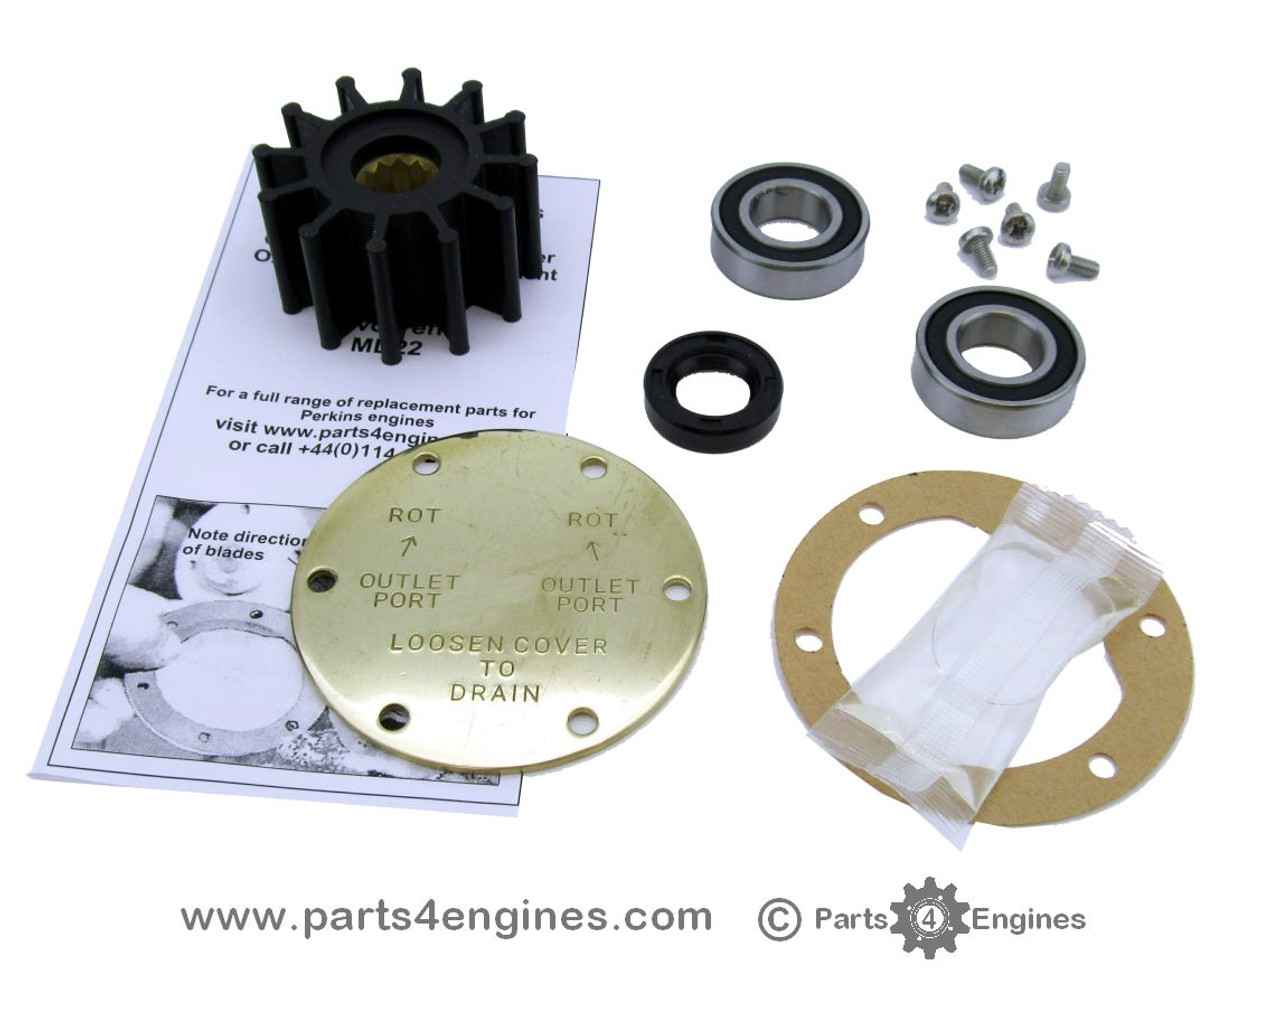 Volvo Penta TAMD22 Raw water pump rebuild kit - parts4engines.com